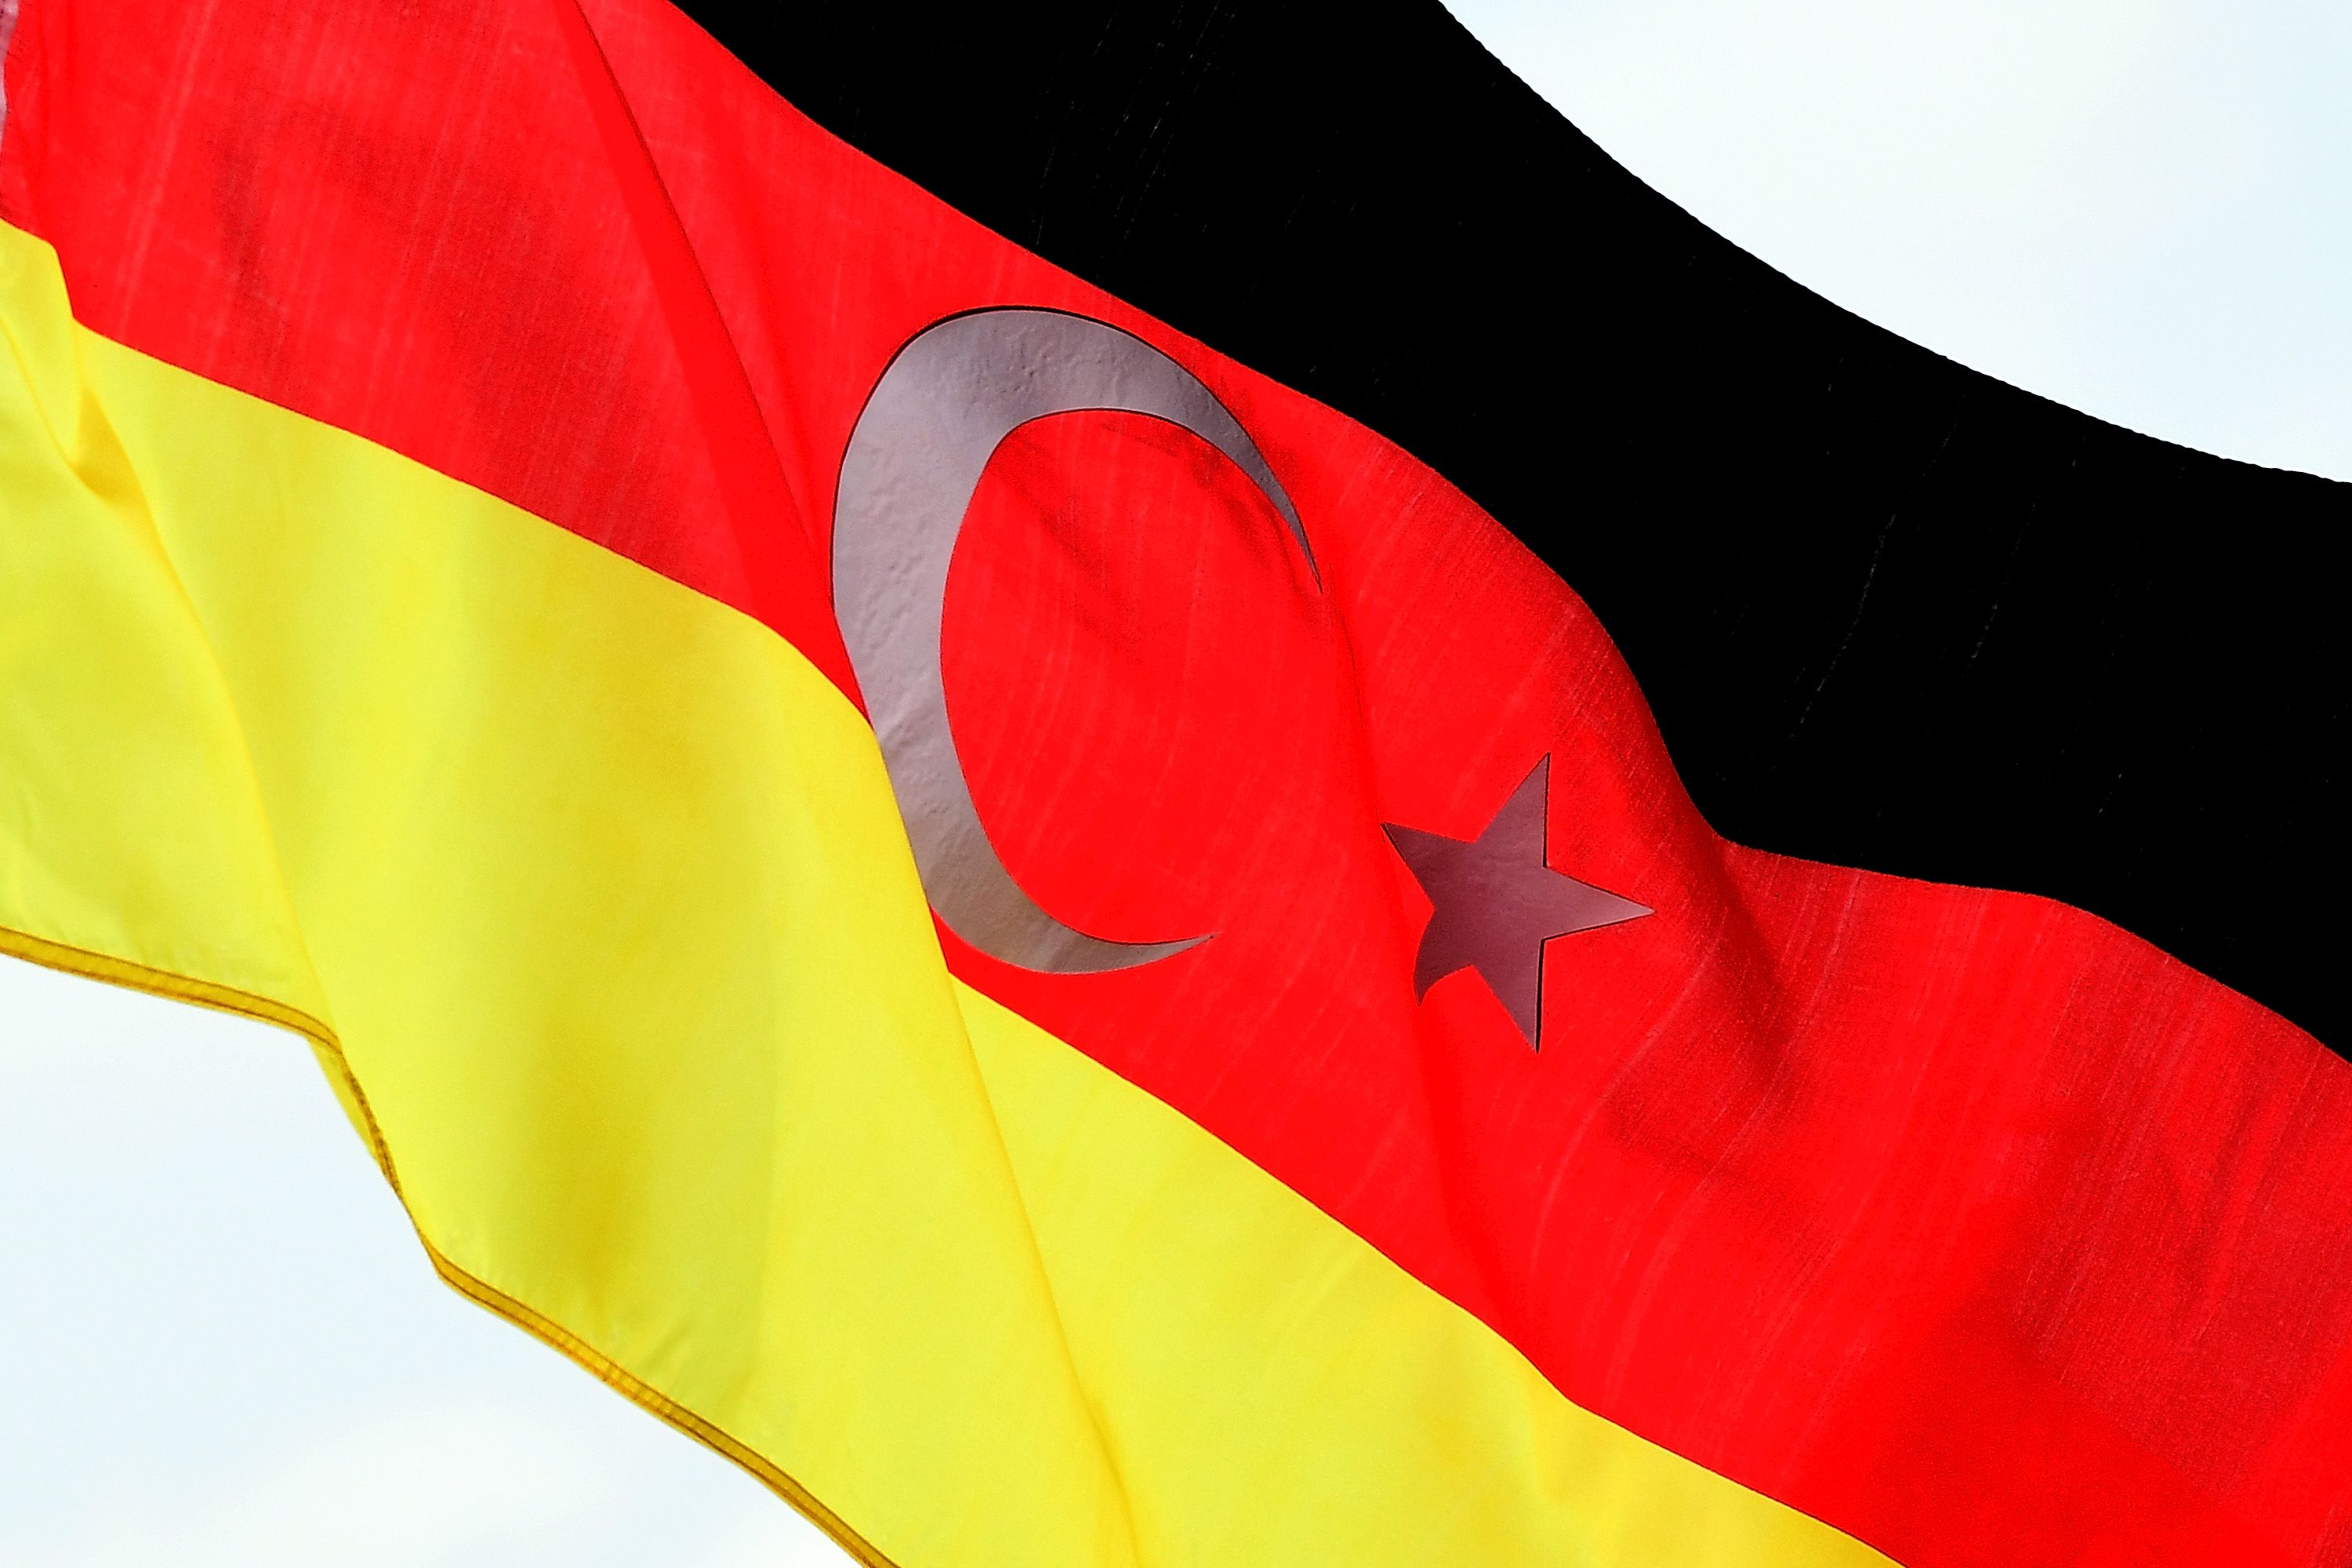 COLOGNE, GERMANY - JULY 31:  A German Turkish flag is seen while supporters of Turkish President Recep Tayyip Erdogan rally at a gathering on July 31, 2016 in Cologne, Germany. Cologne and surrounding cities are home to tens of thousands of people of Turkish descent. Erdogan has pursued strong-handed measures following the recent coup attempt by elements of the Turkish armed forces that include the shuttering of media outlets and the arrest of journalists as well as suspensions of ten of thousands of university professors, public servants and police members.  (Photo by Sascha Steinbach/Getty Images)